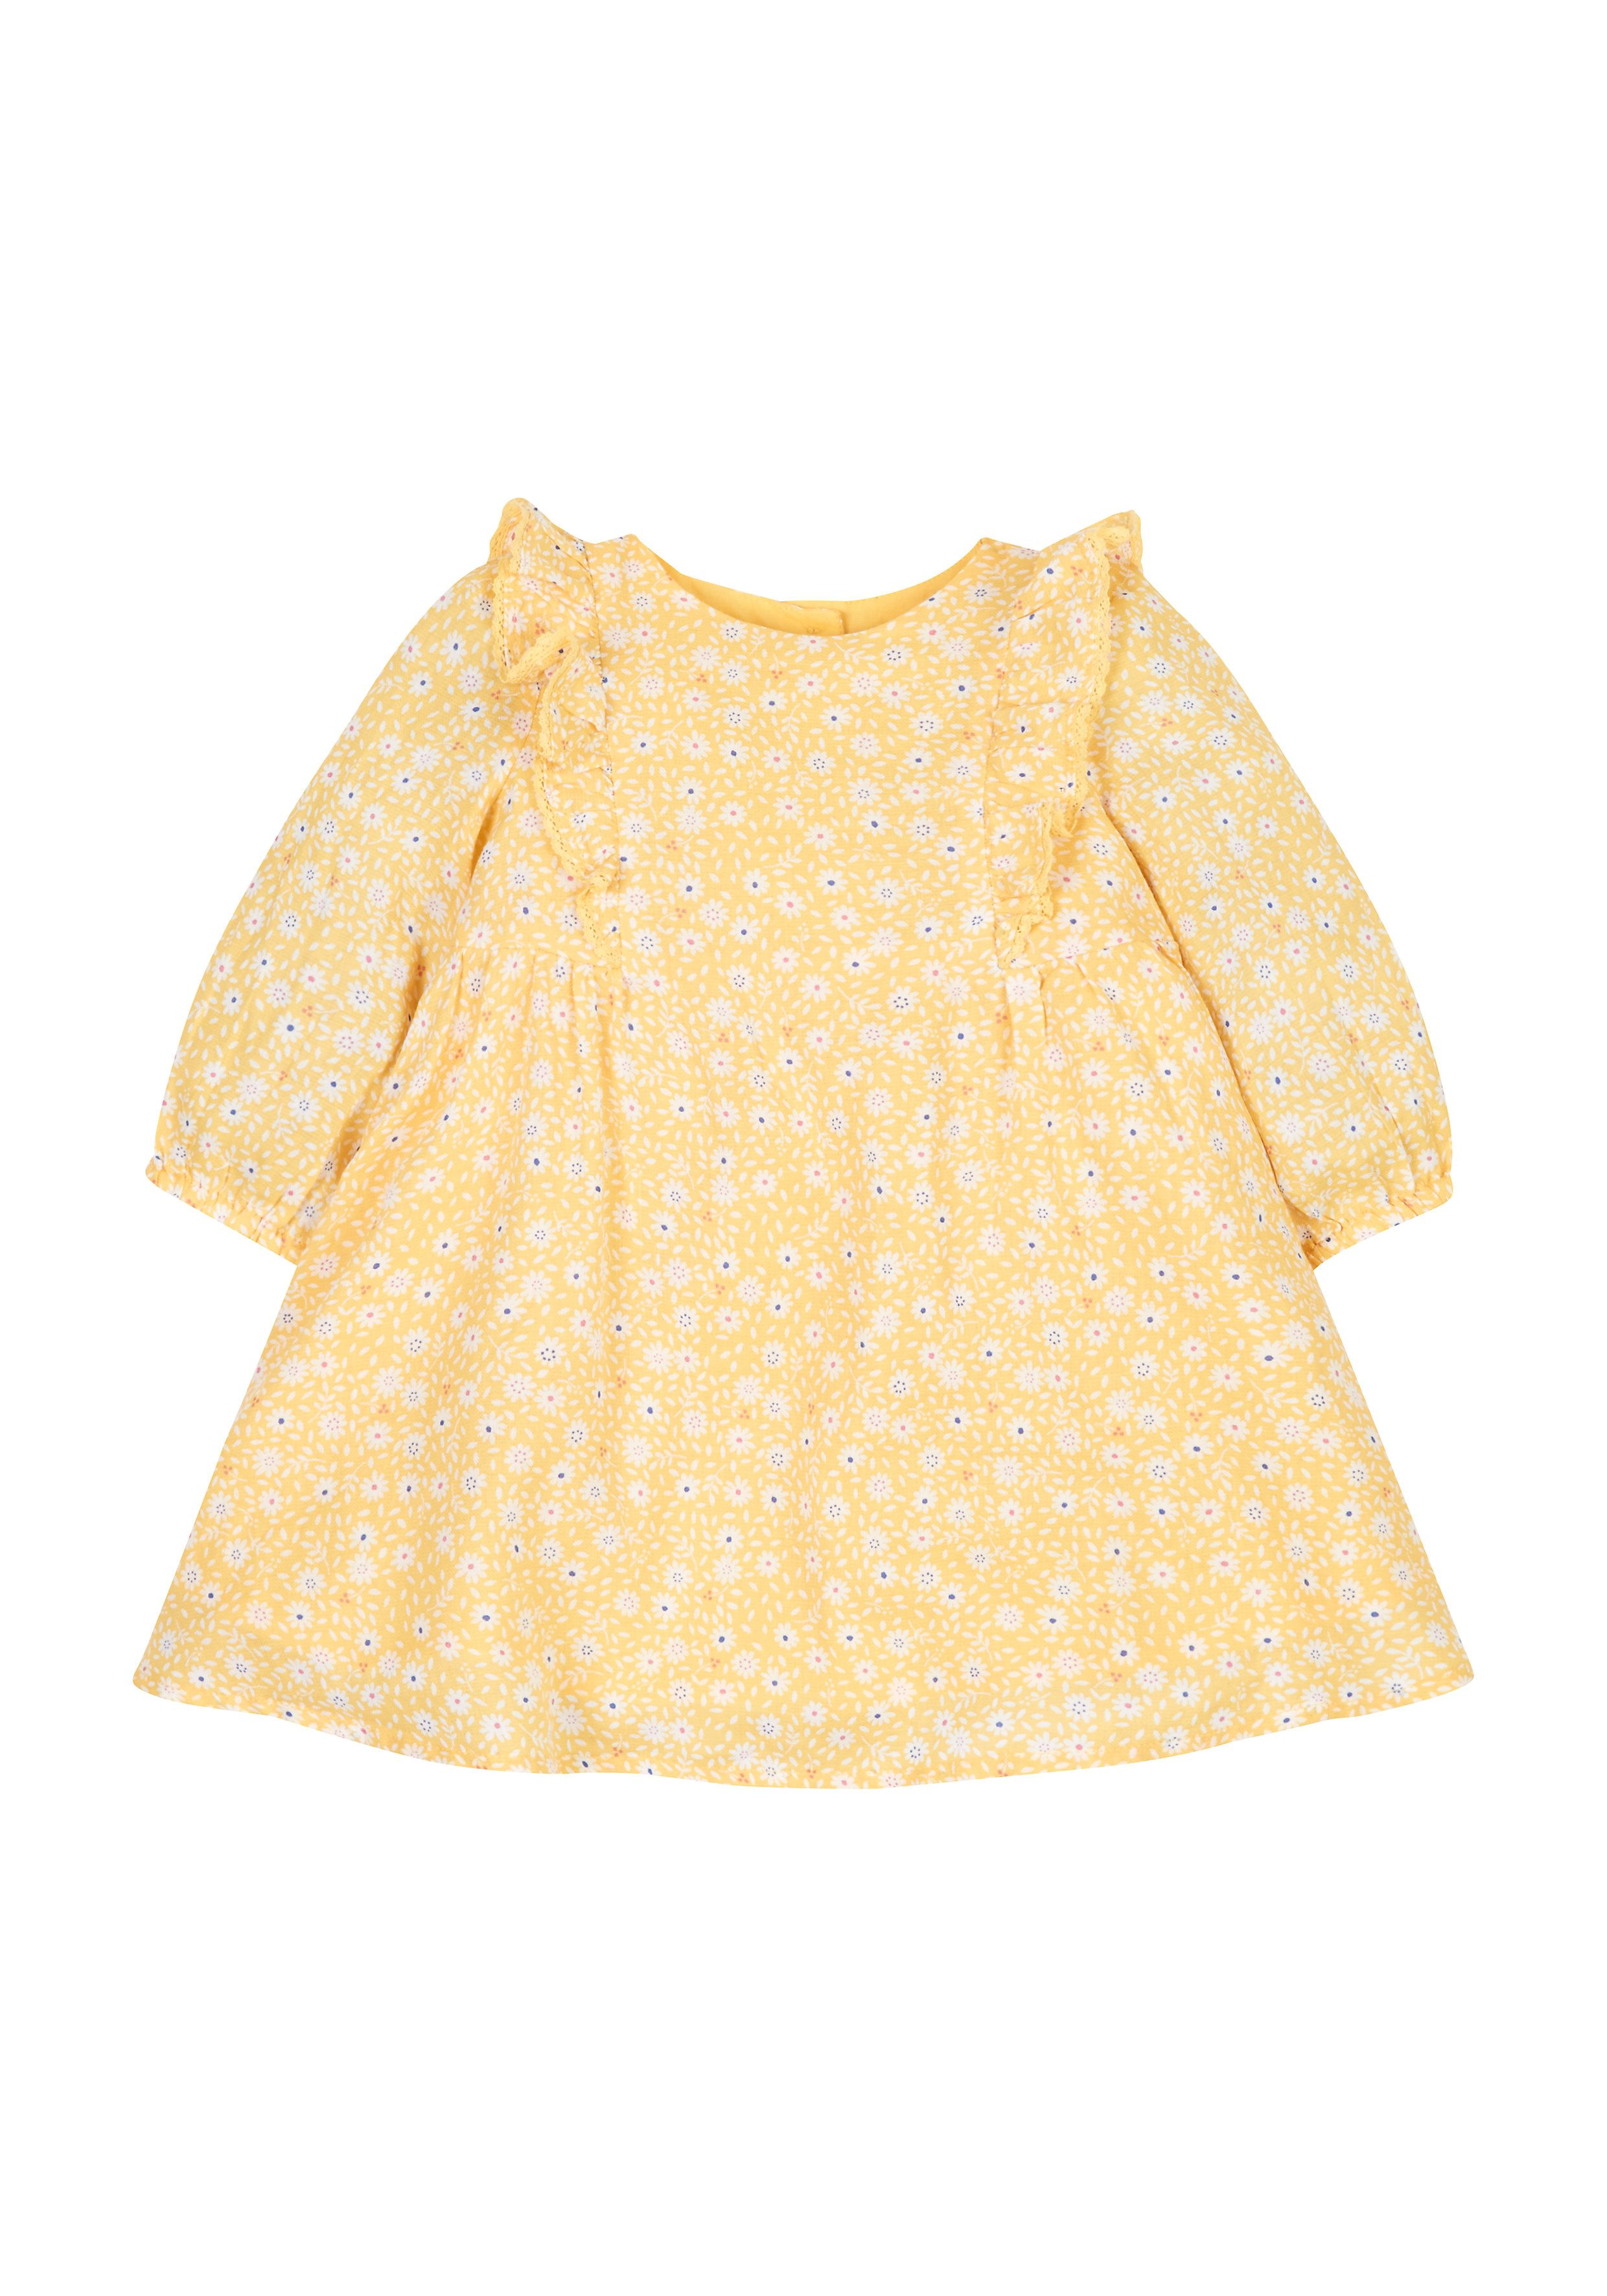 Mothercare | Frilly Mustard Dress